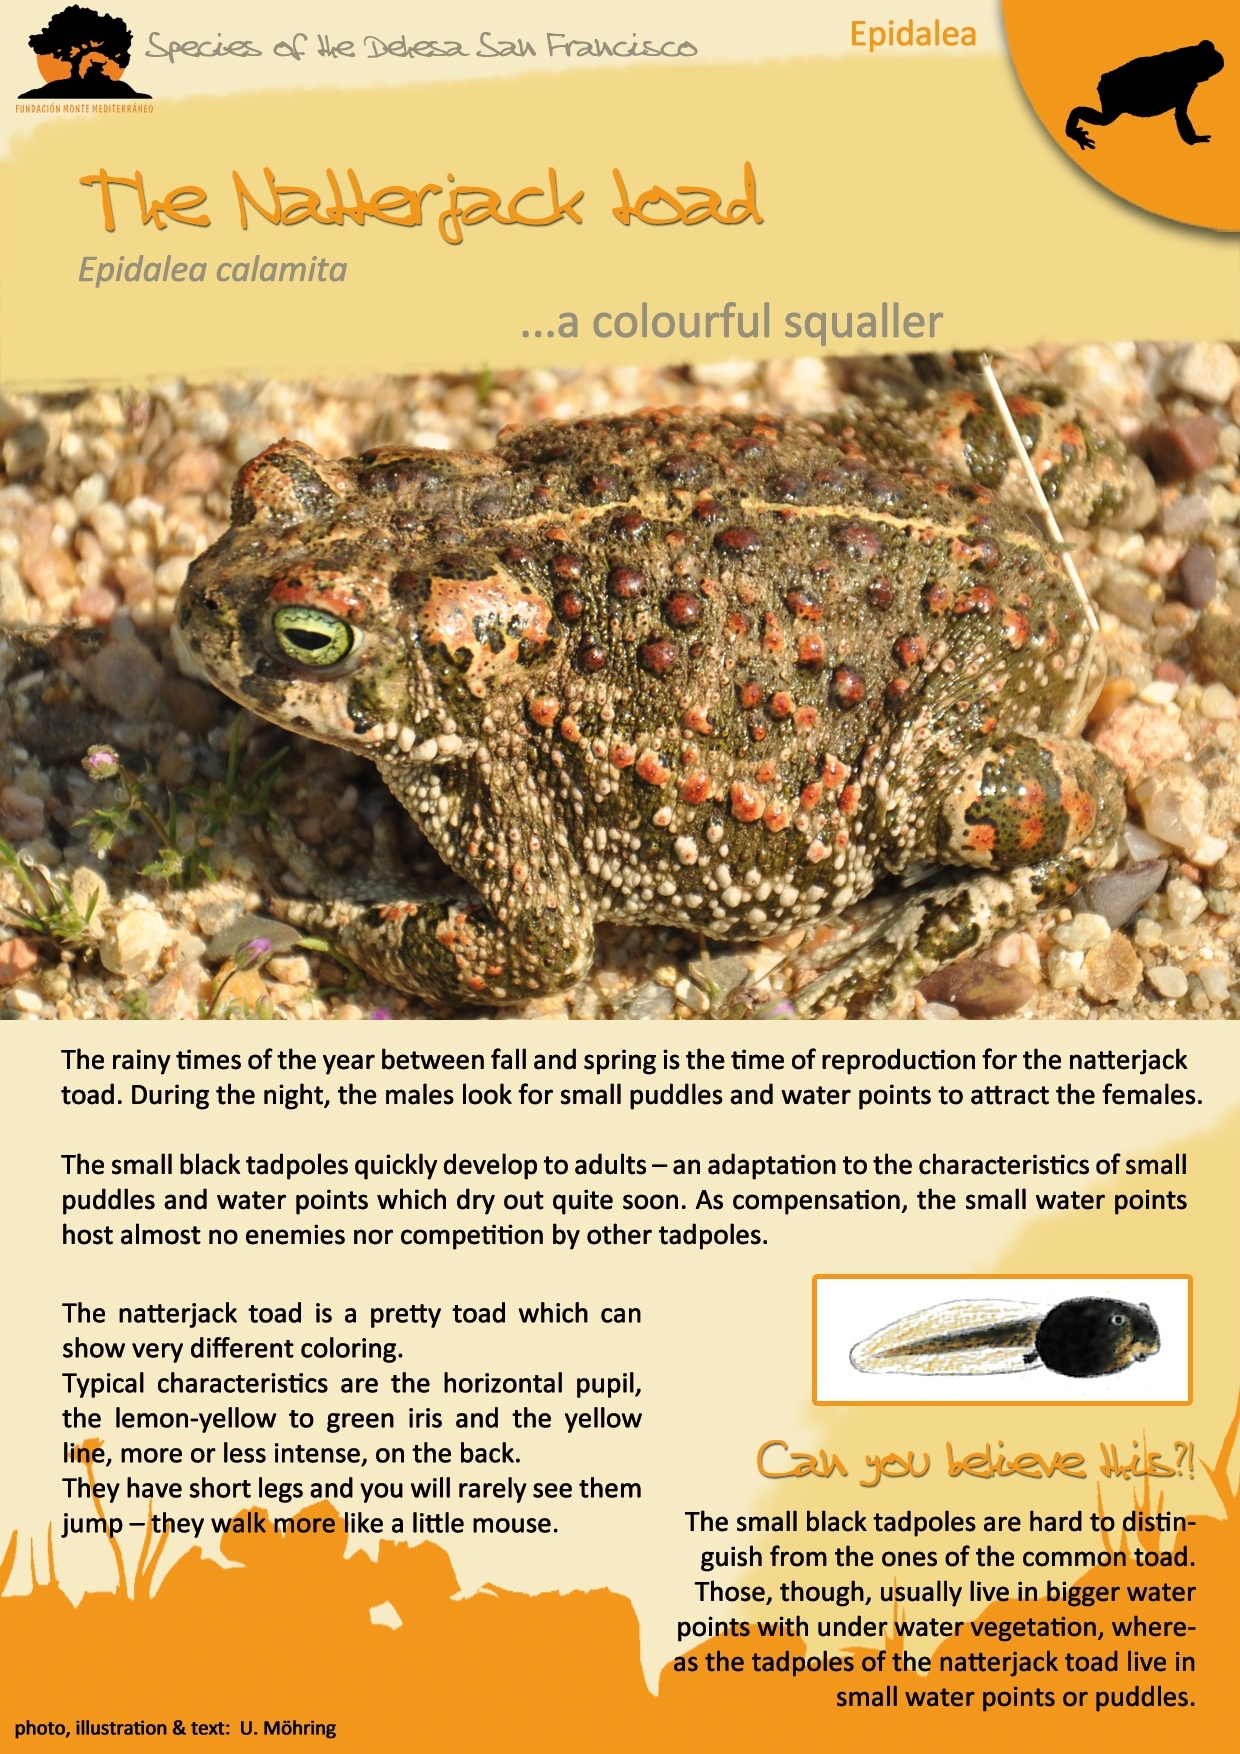 The Natterjack toad